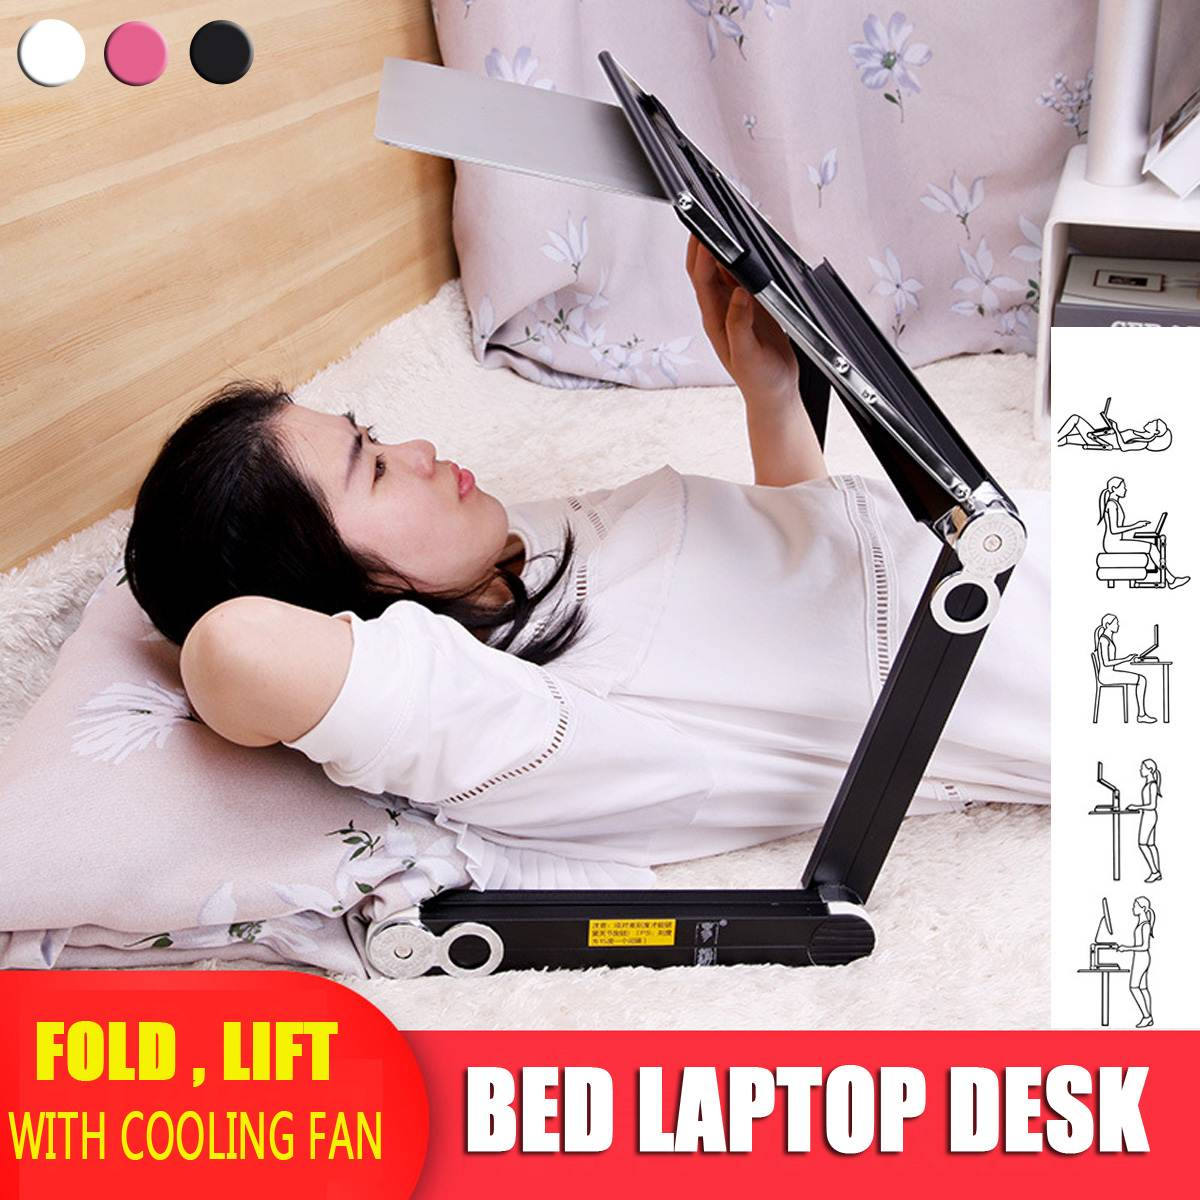 360 Degree Adjustable <font><b>Notebook</b></font> Suitable With Cooling Fan Folding <font><b>Portable</b></font> Laptop Desk <font><b>Table</b></font> Stand Tray for Bed And Sofa image